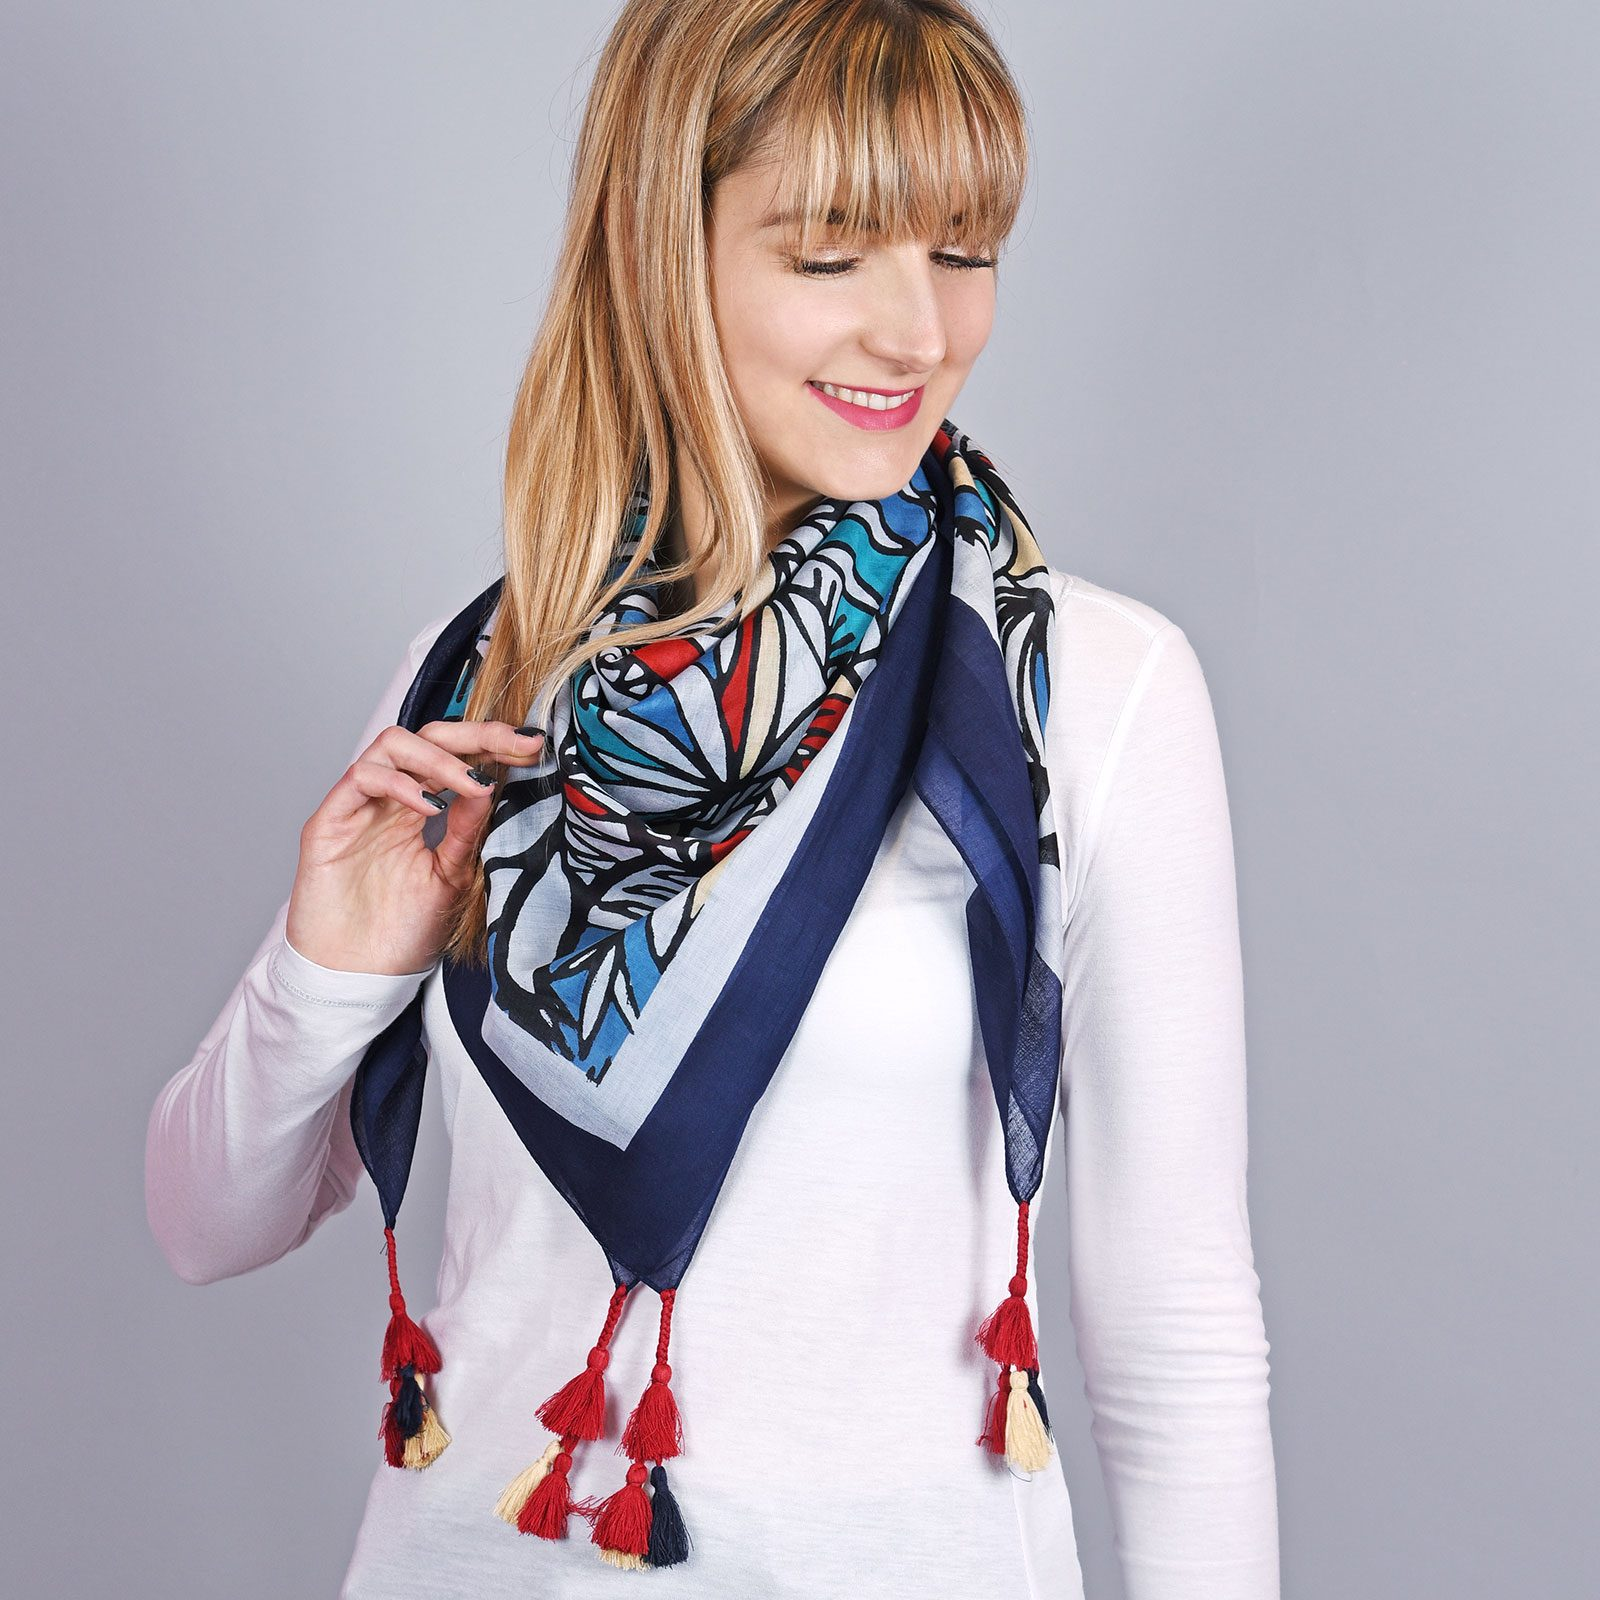 http://lookbook.allee-du-foulard.fr/wp-content/uploads/2018/05/AT-04330-VF16-1-foulard-carre-fantaisie-bleu-1600x1600.jpg